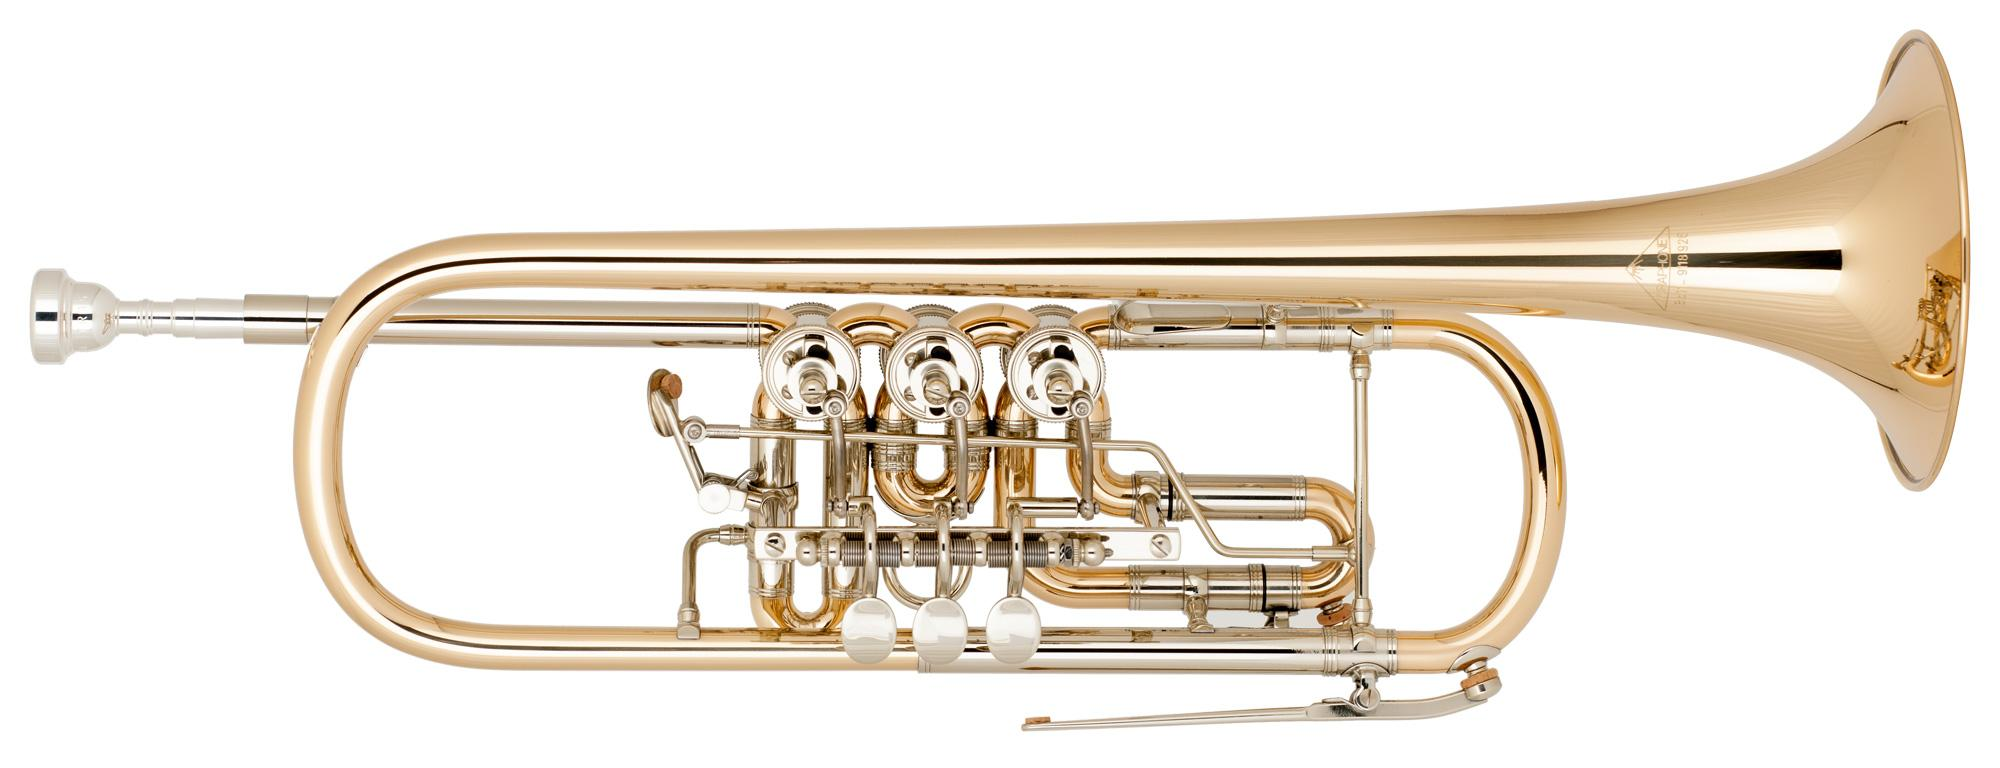 Miraphone Bb 11 Trompete Goldmessing